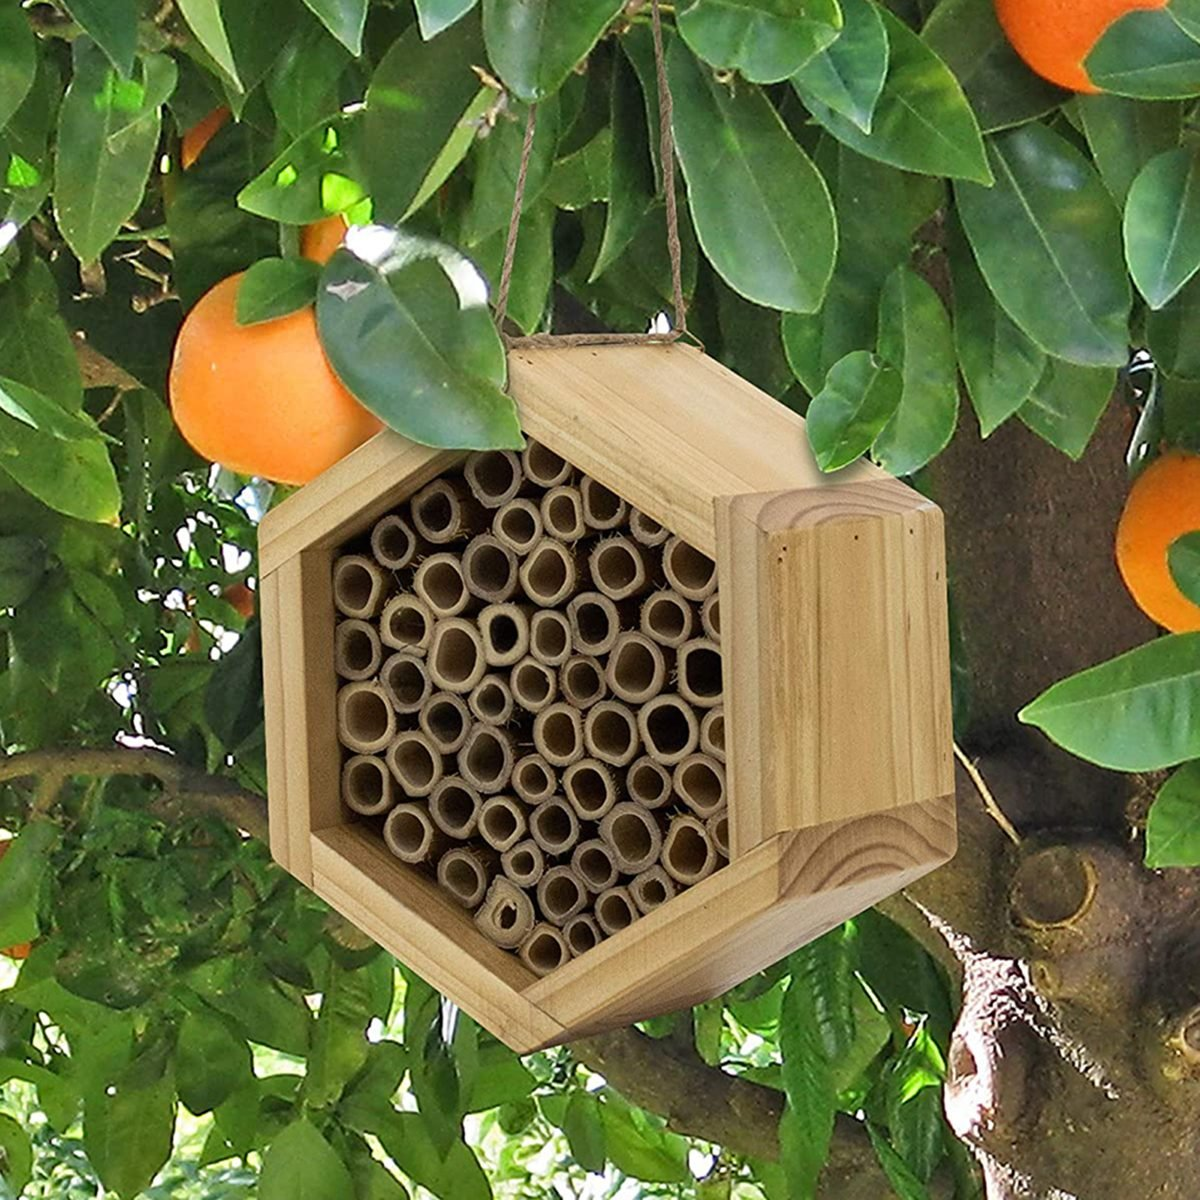 Mason Bee House - Handmade Natural Bamboo Bee Hive - Attracts Peaceful Bee Pollinators to Enhance Your Garden's Productivity